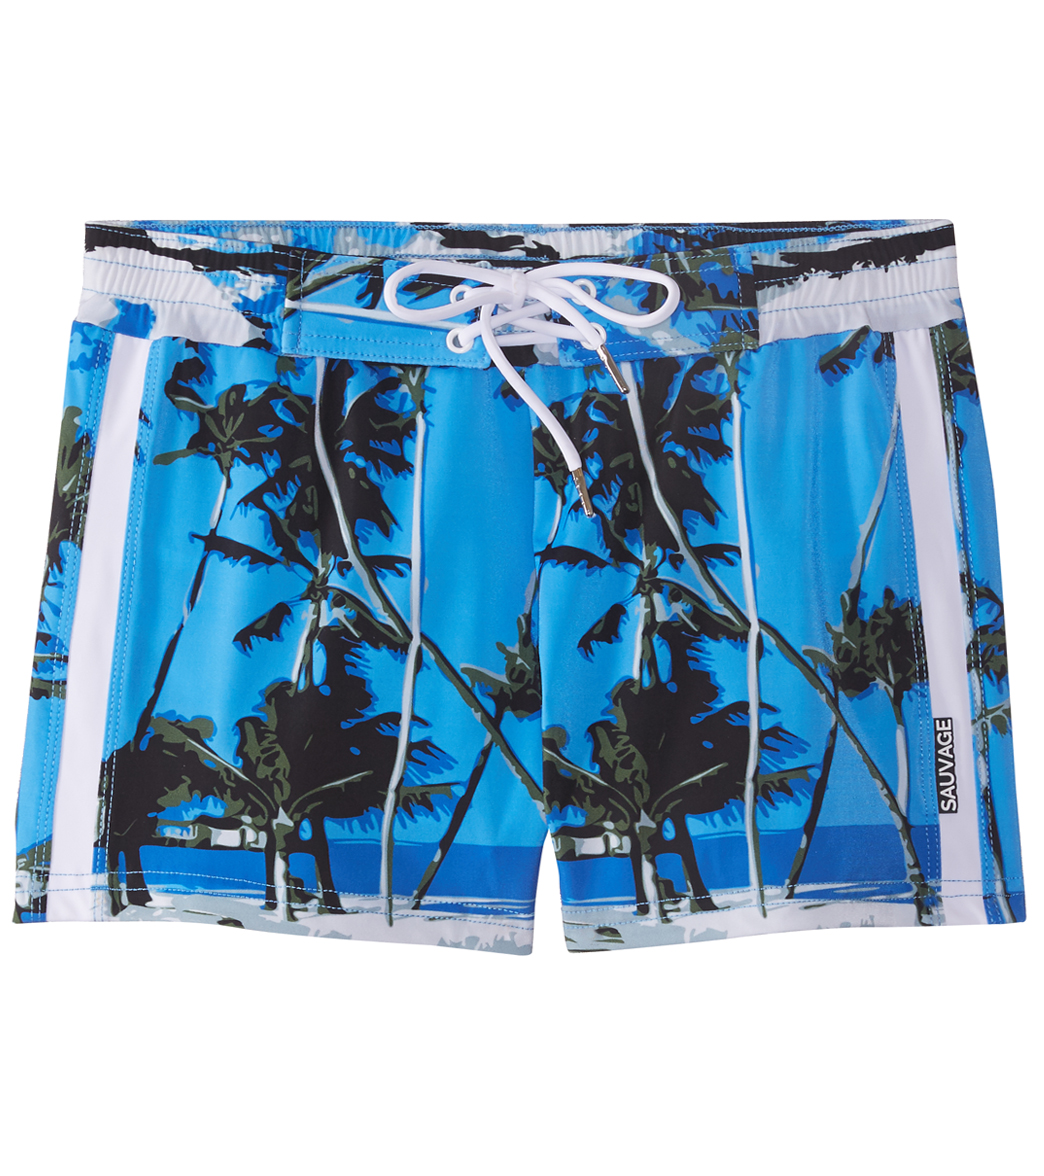 e62d078144958 Sauvage Caribbean Blue Swim Trunks at SwimOutlet.com - Free ...